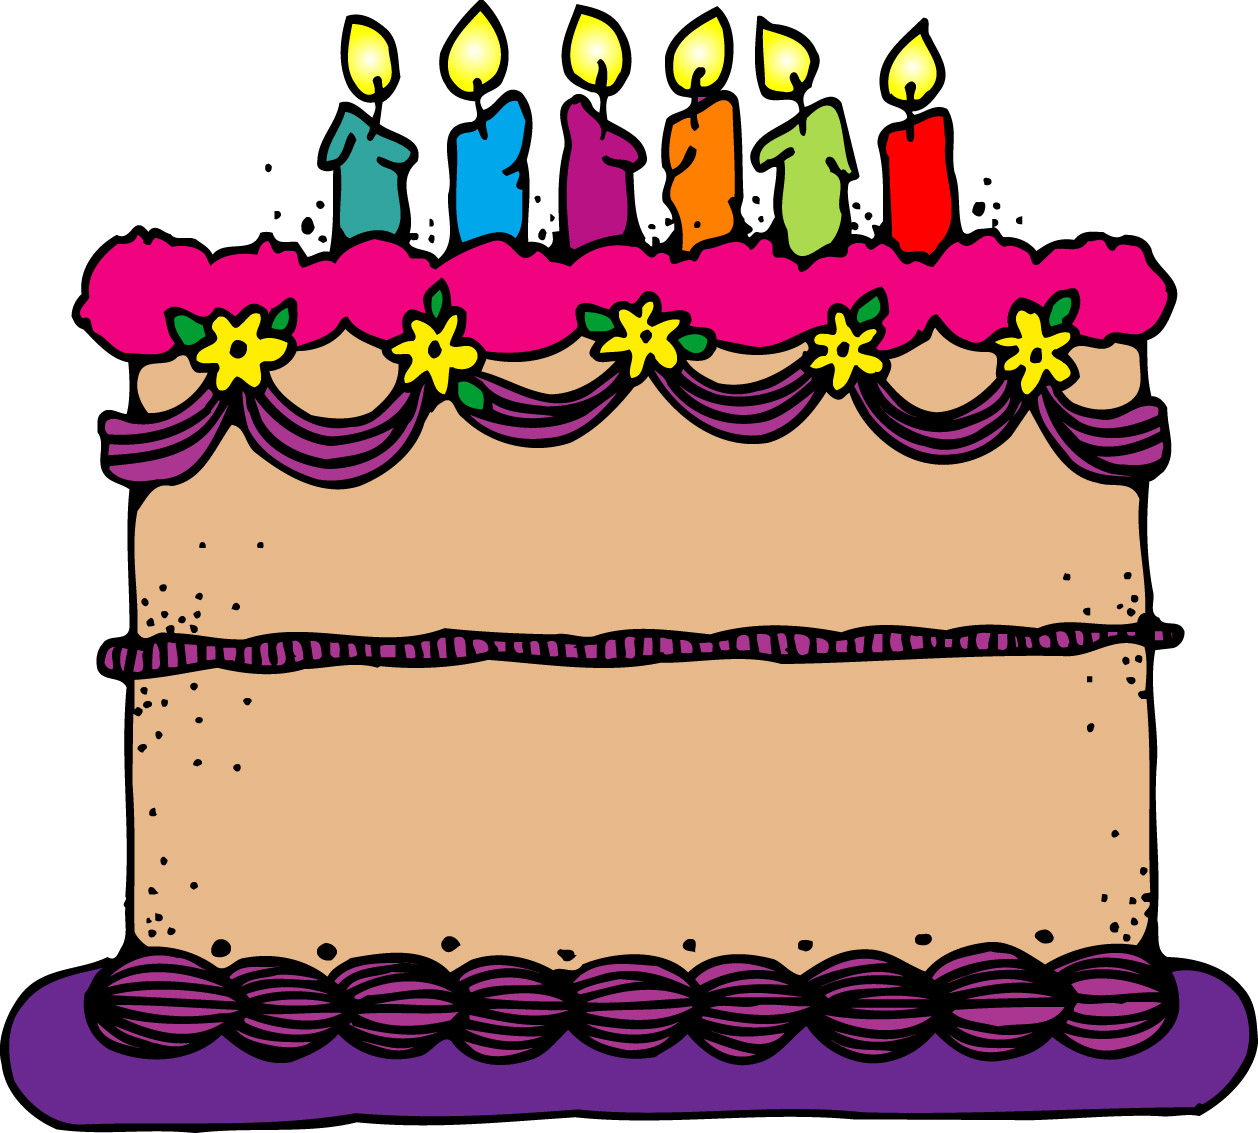 Animated Birthday Cake Clipart Cake Clip Art